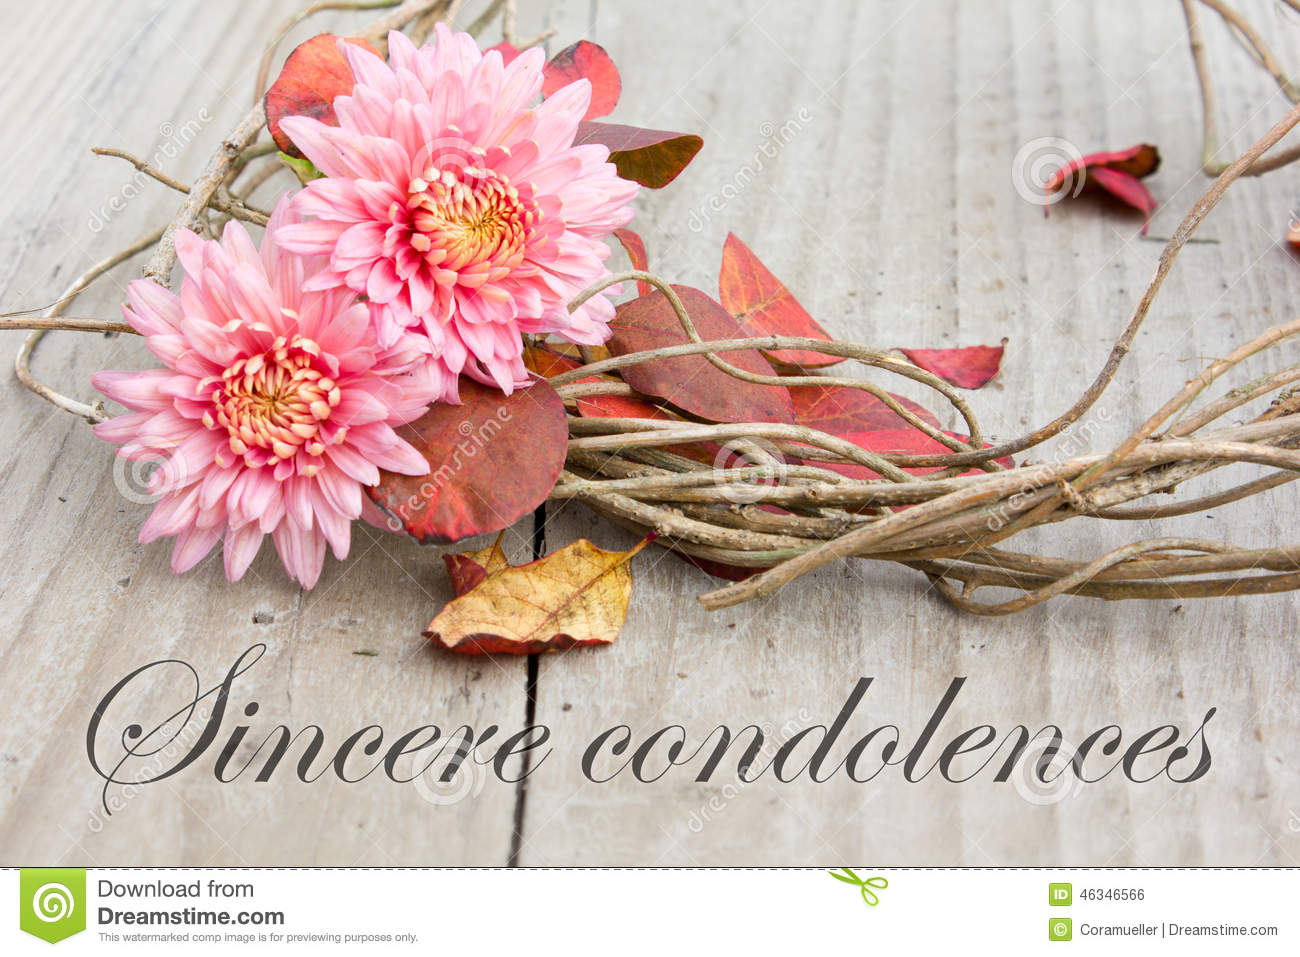 Sincere Condolences Stock Photo - Image: 46346566